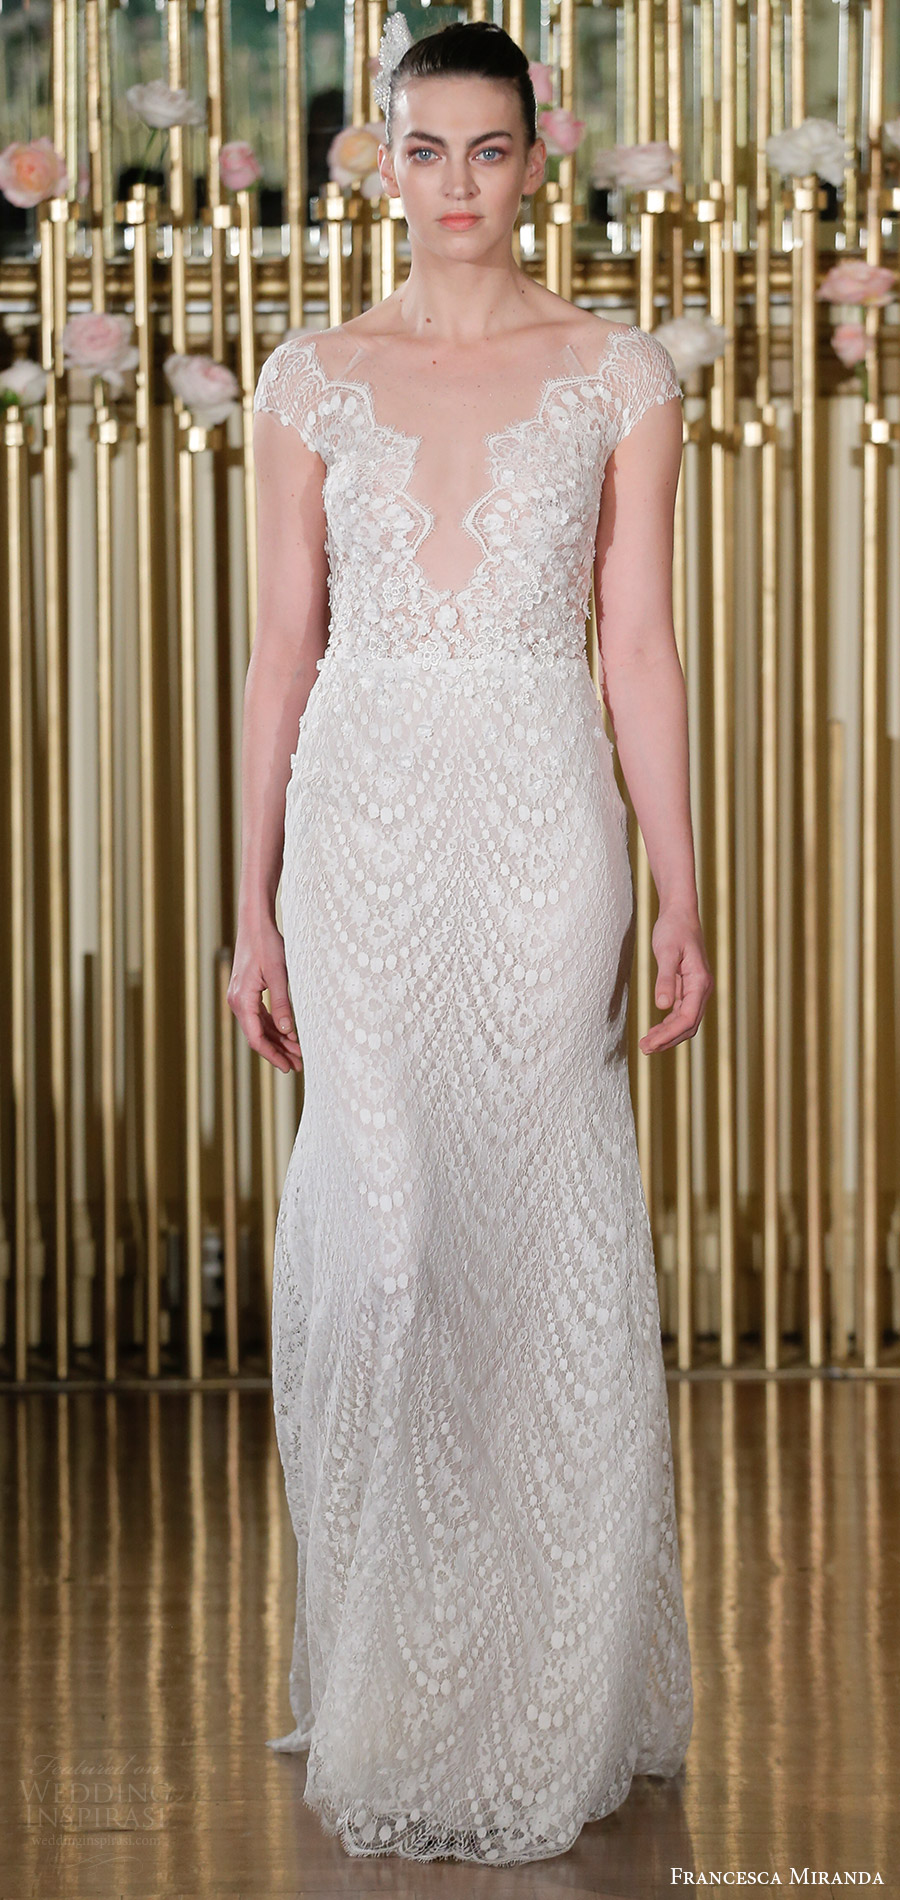 francesca miranda spring 2018 bridal cap sleeves deep v neck lace trumpet wedding dress (adrienne) mv elegant